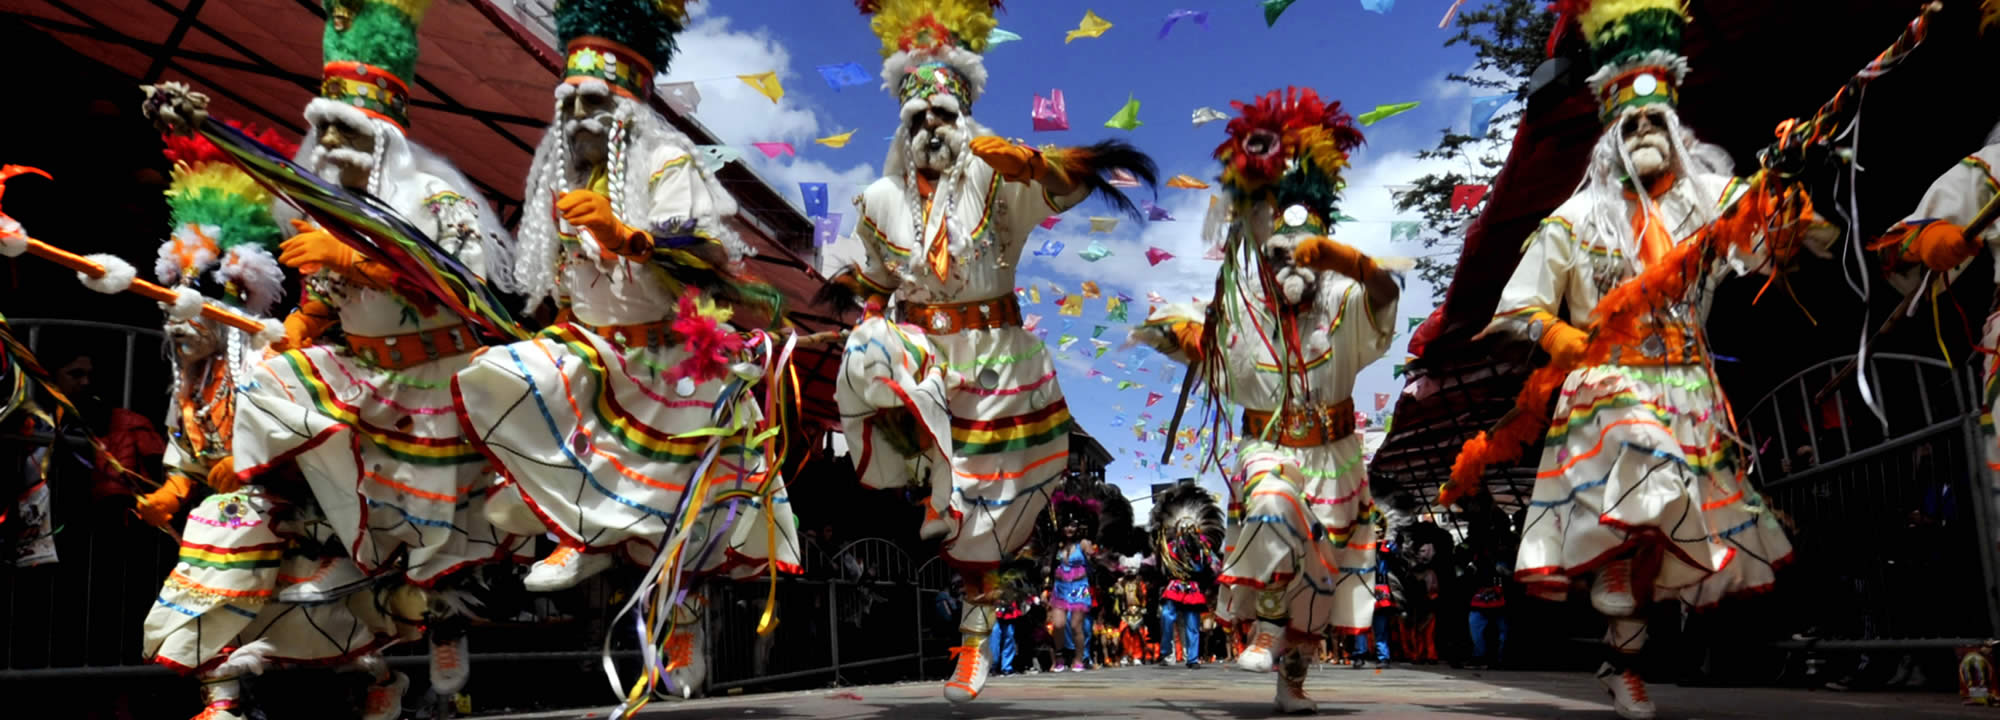 Oruro Carnival, a party not to be missed!